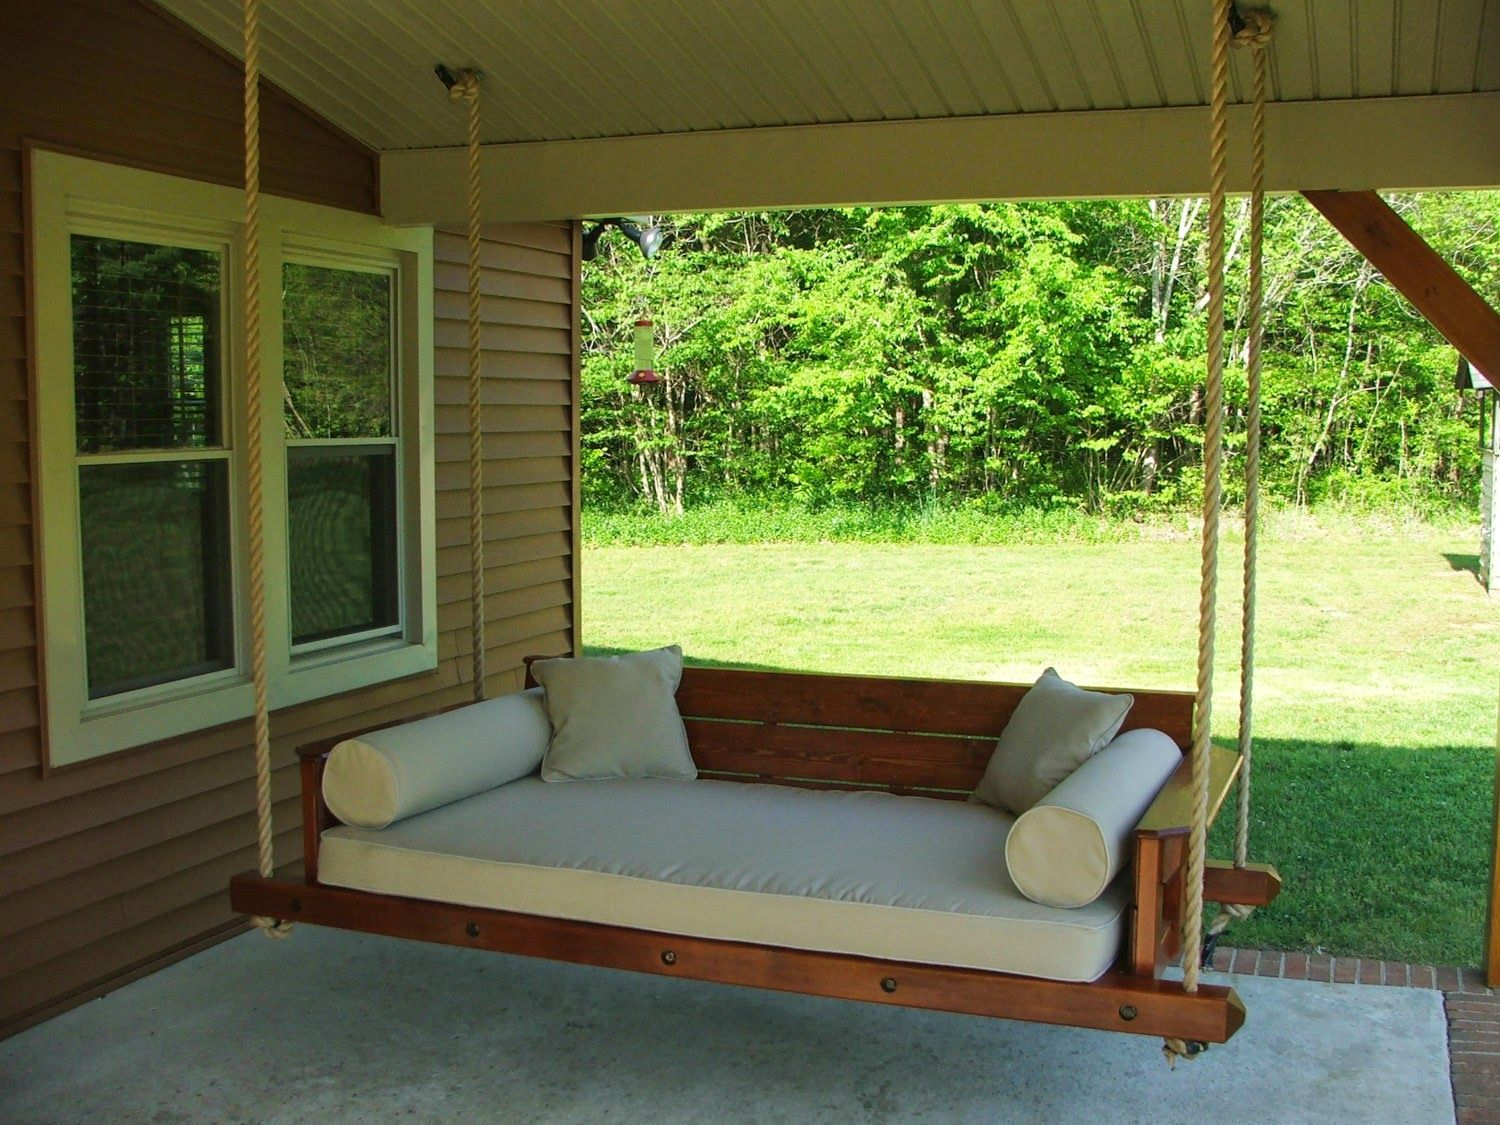 Veranda Schaukel Outdoor Swing Bed Plans | Porch Swing Bed, Diy Porch Swing